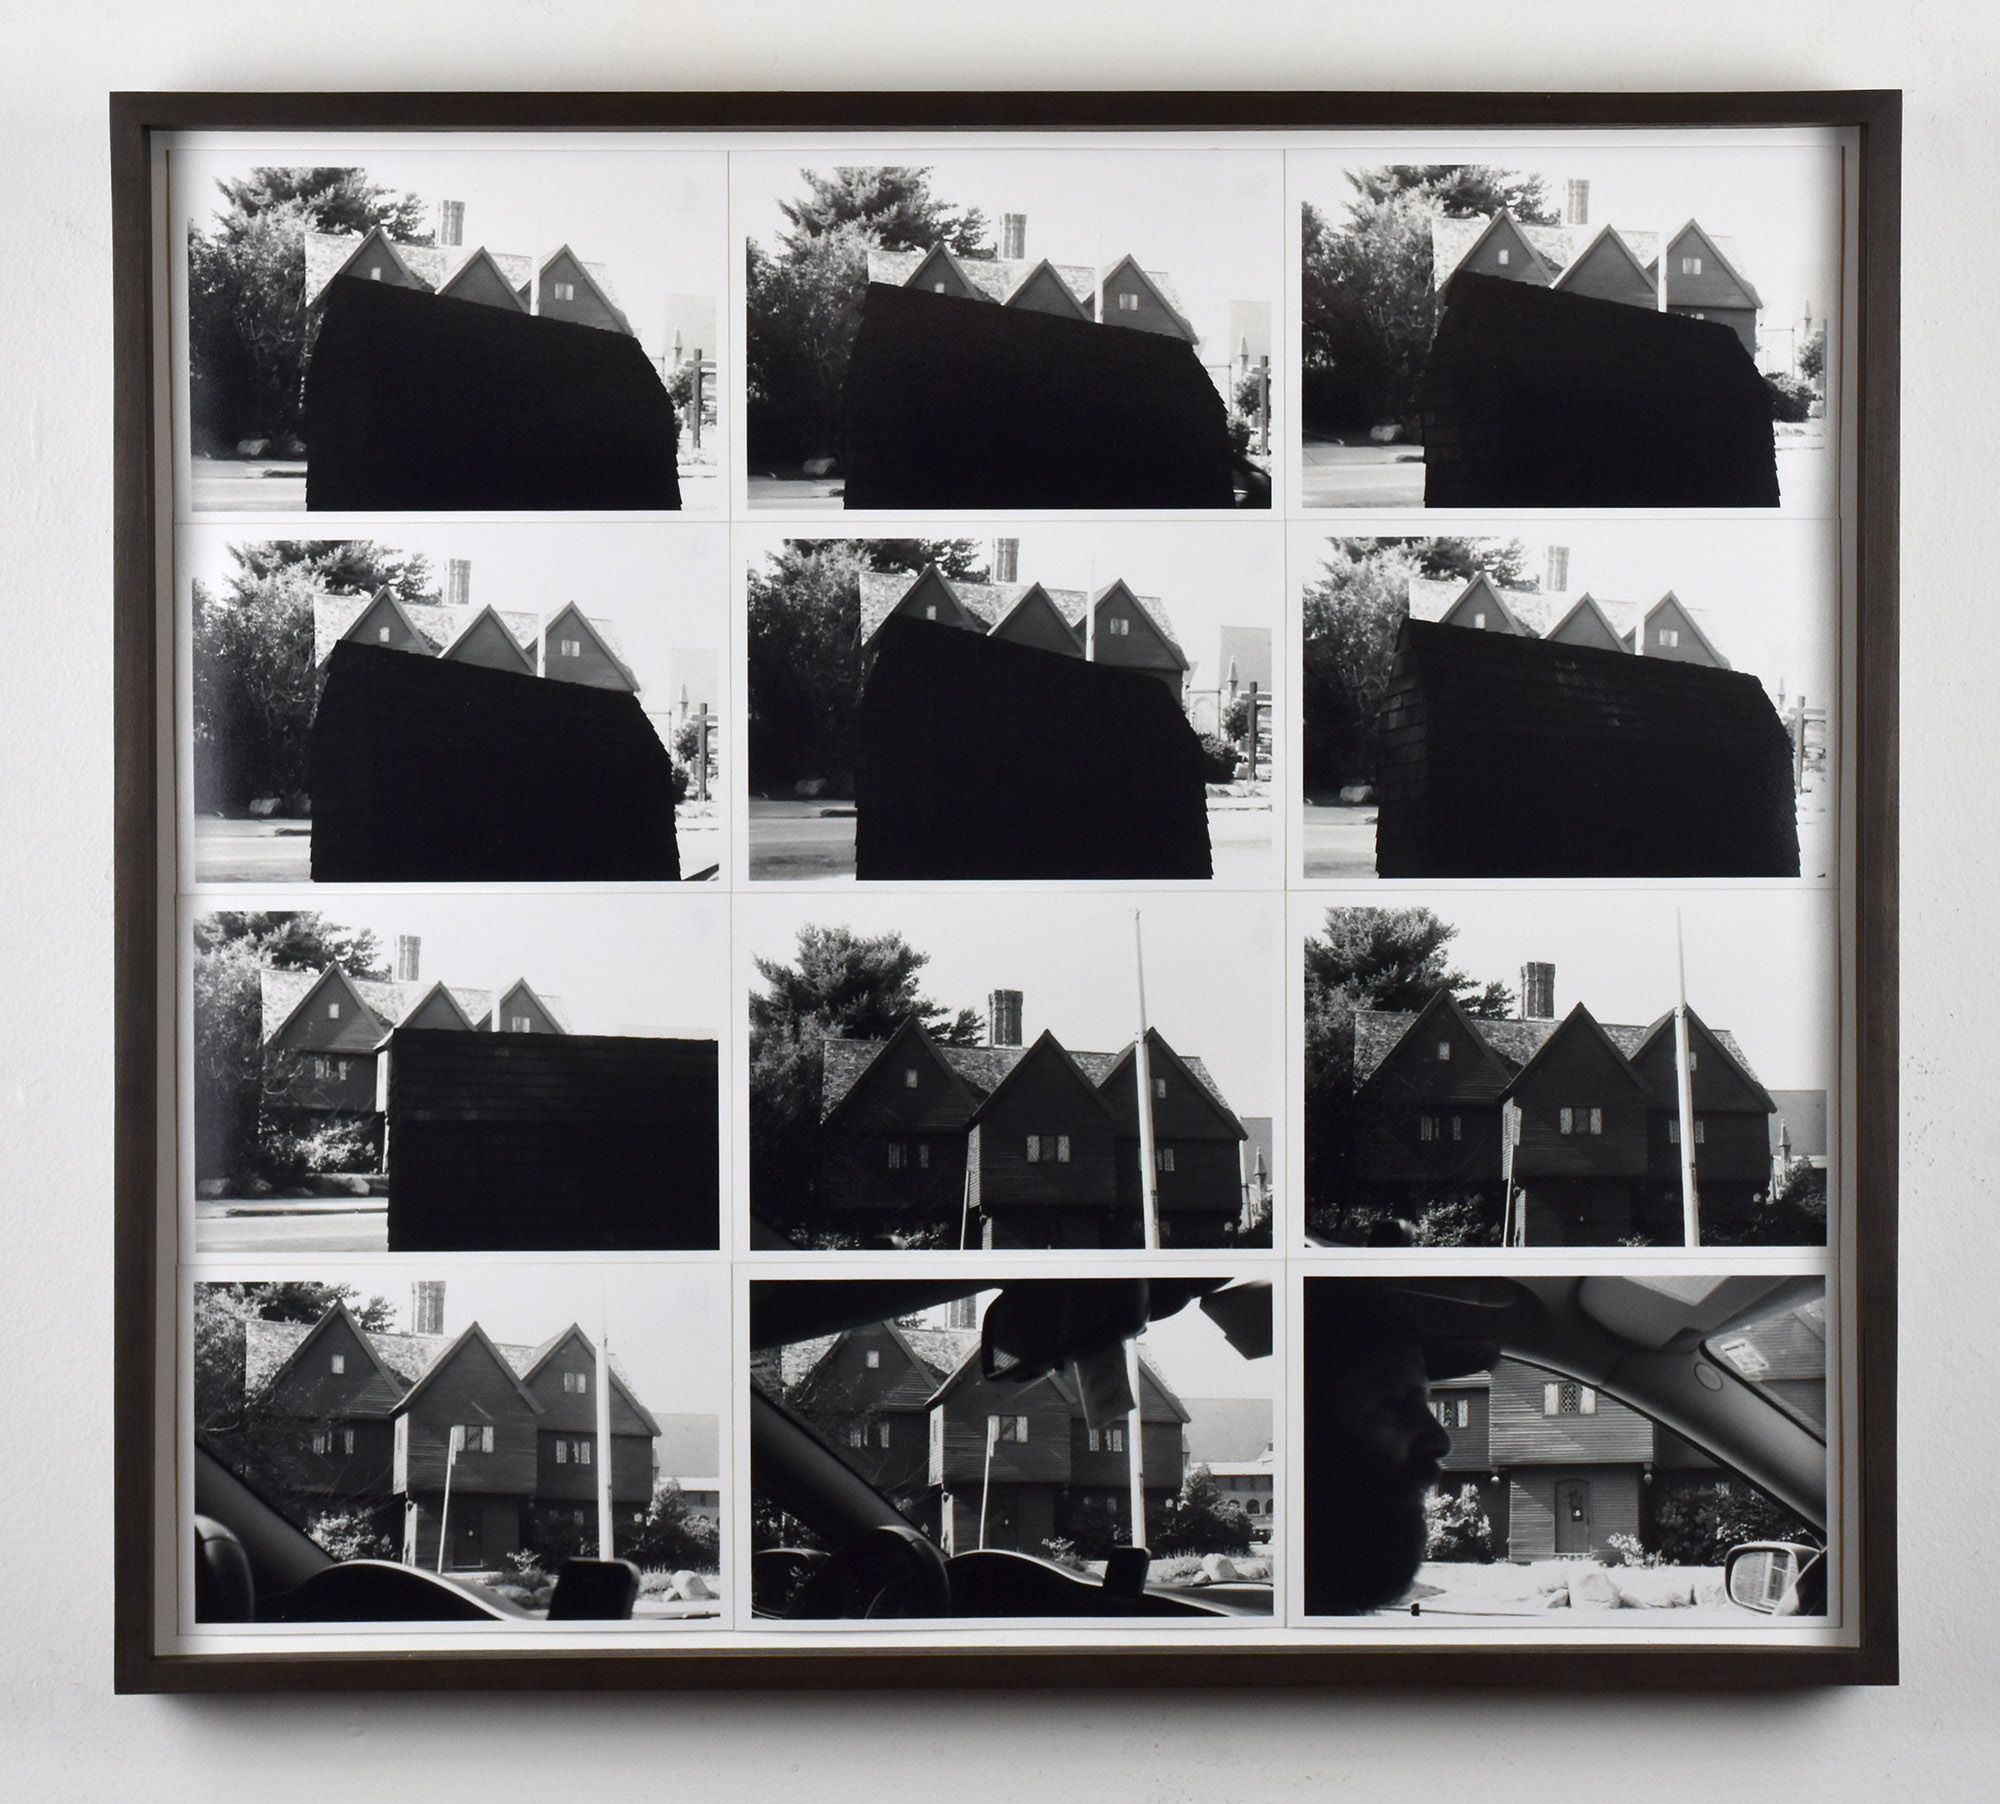 Cal Siegel,  Witch house drive by , 2017. Twelve gelatin silver prints, 12 x 18 inches.